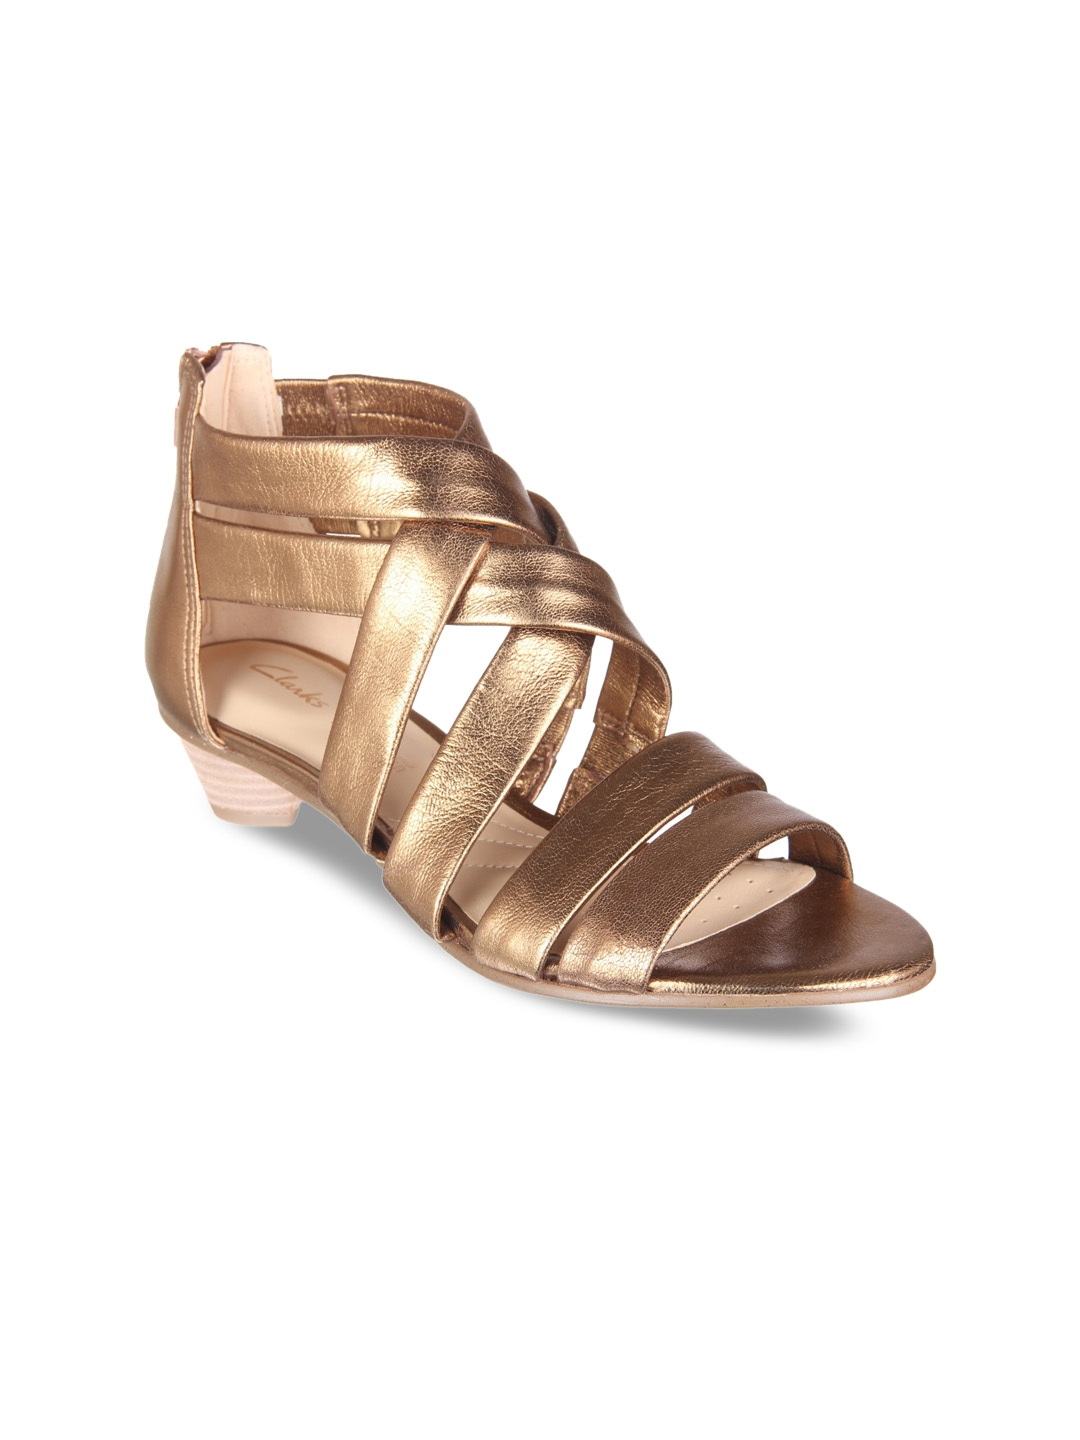 7125a02ae44 Buy Clarks Women Gold Toned Solid Gladiators - Heels for Women ...